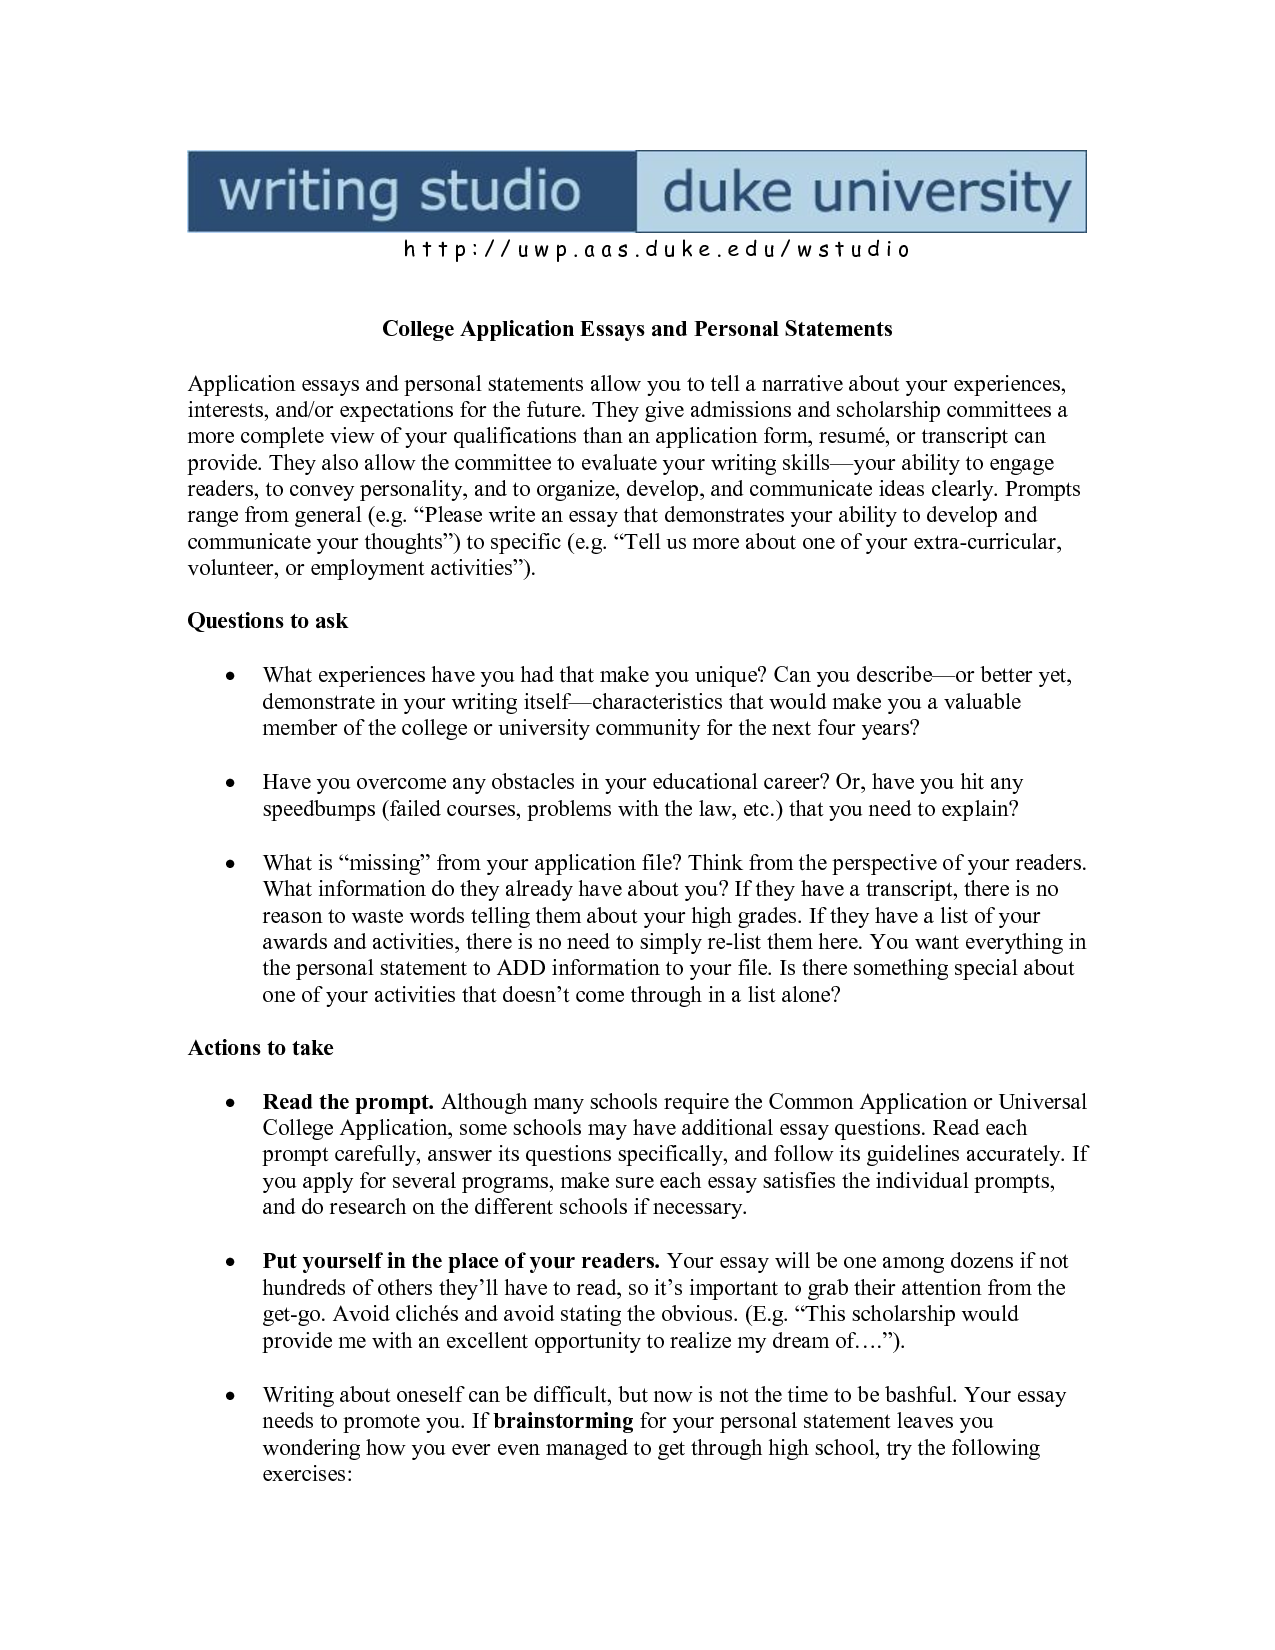 uc application essay co uc application essay 2015 sample personal